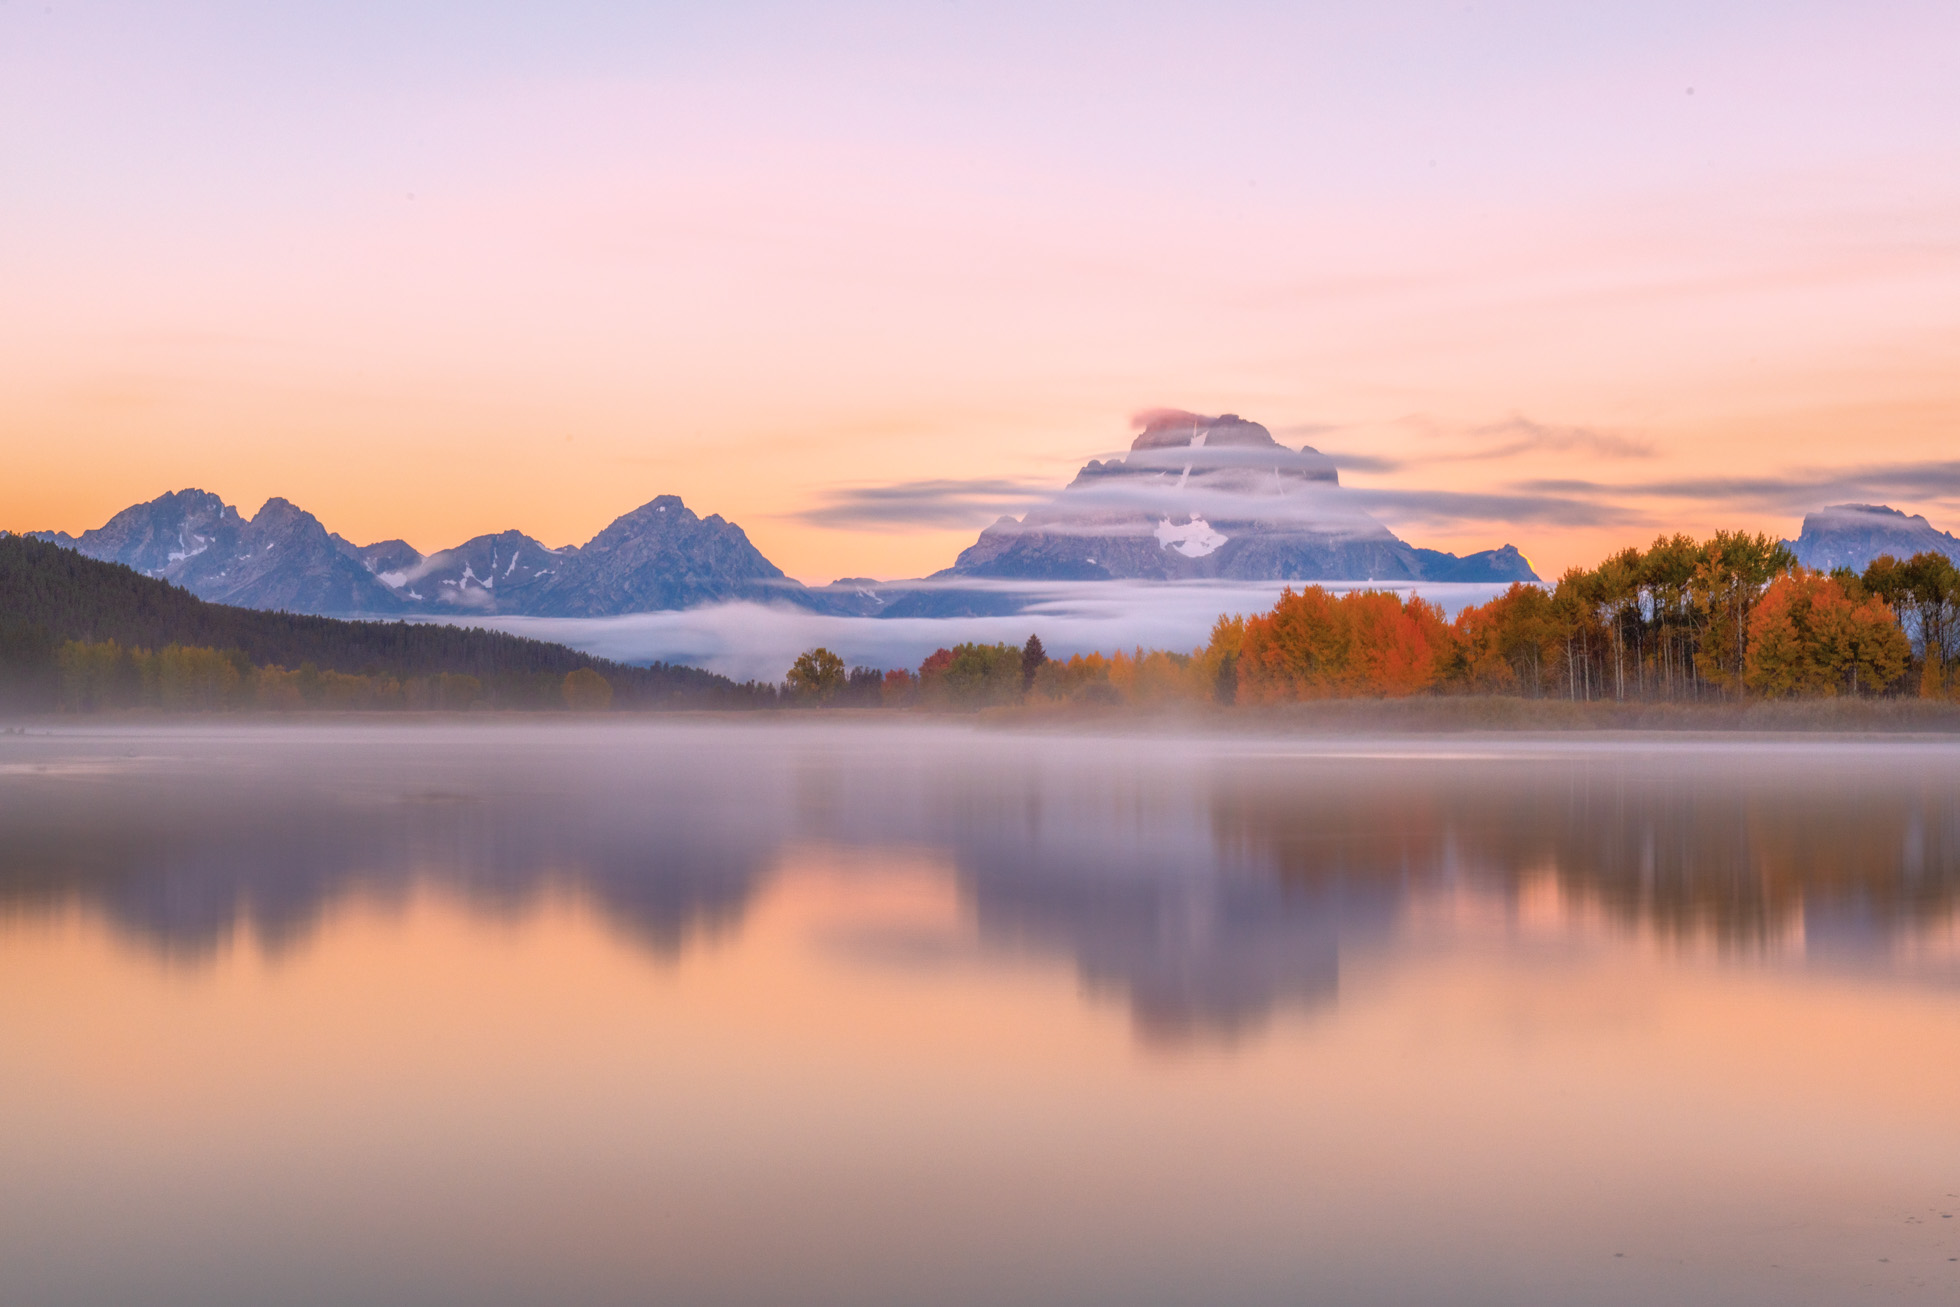 60mm brings me closer to Mt. Moran in this sunrise scene and creating nice symmetry between the mountains and their reflection.